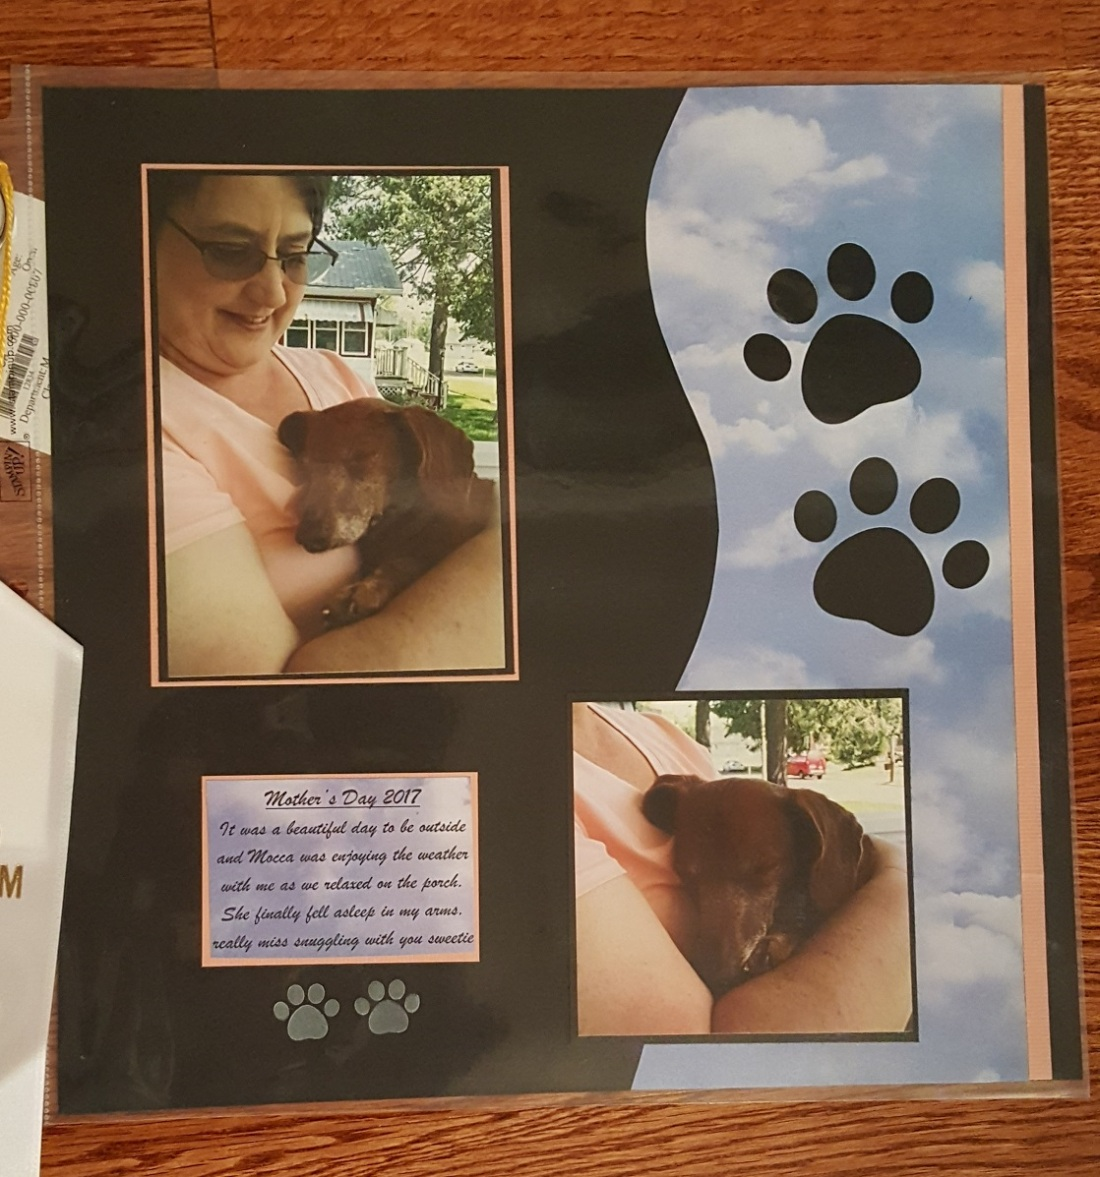 Vicki-MothersDay2017-layout2